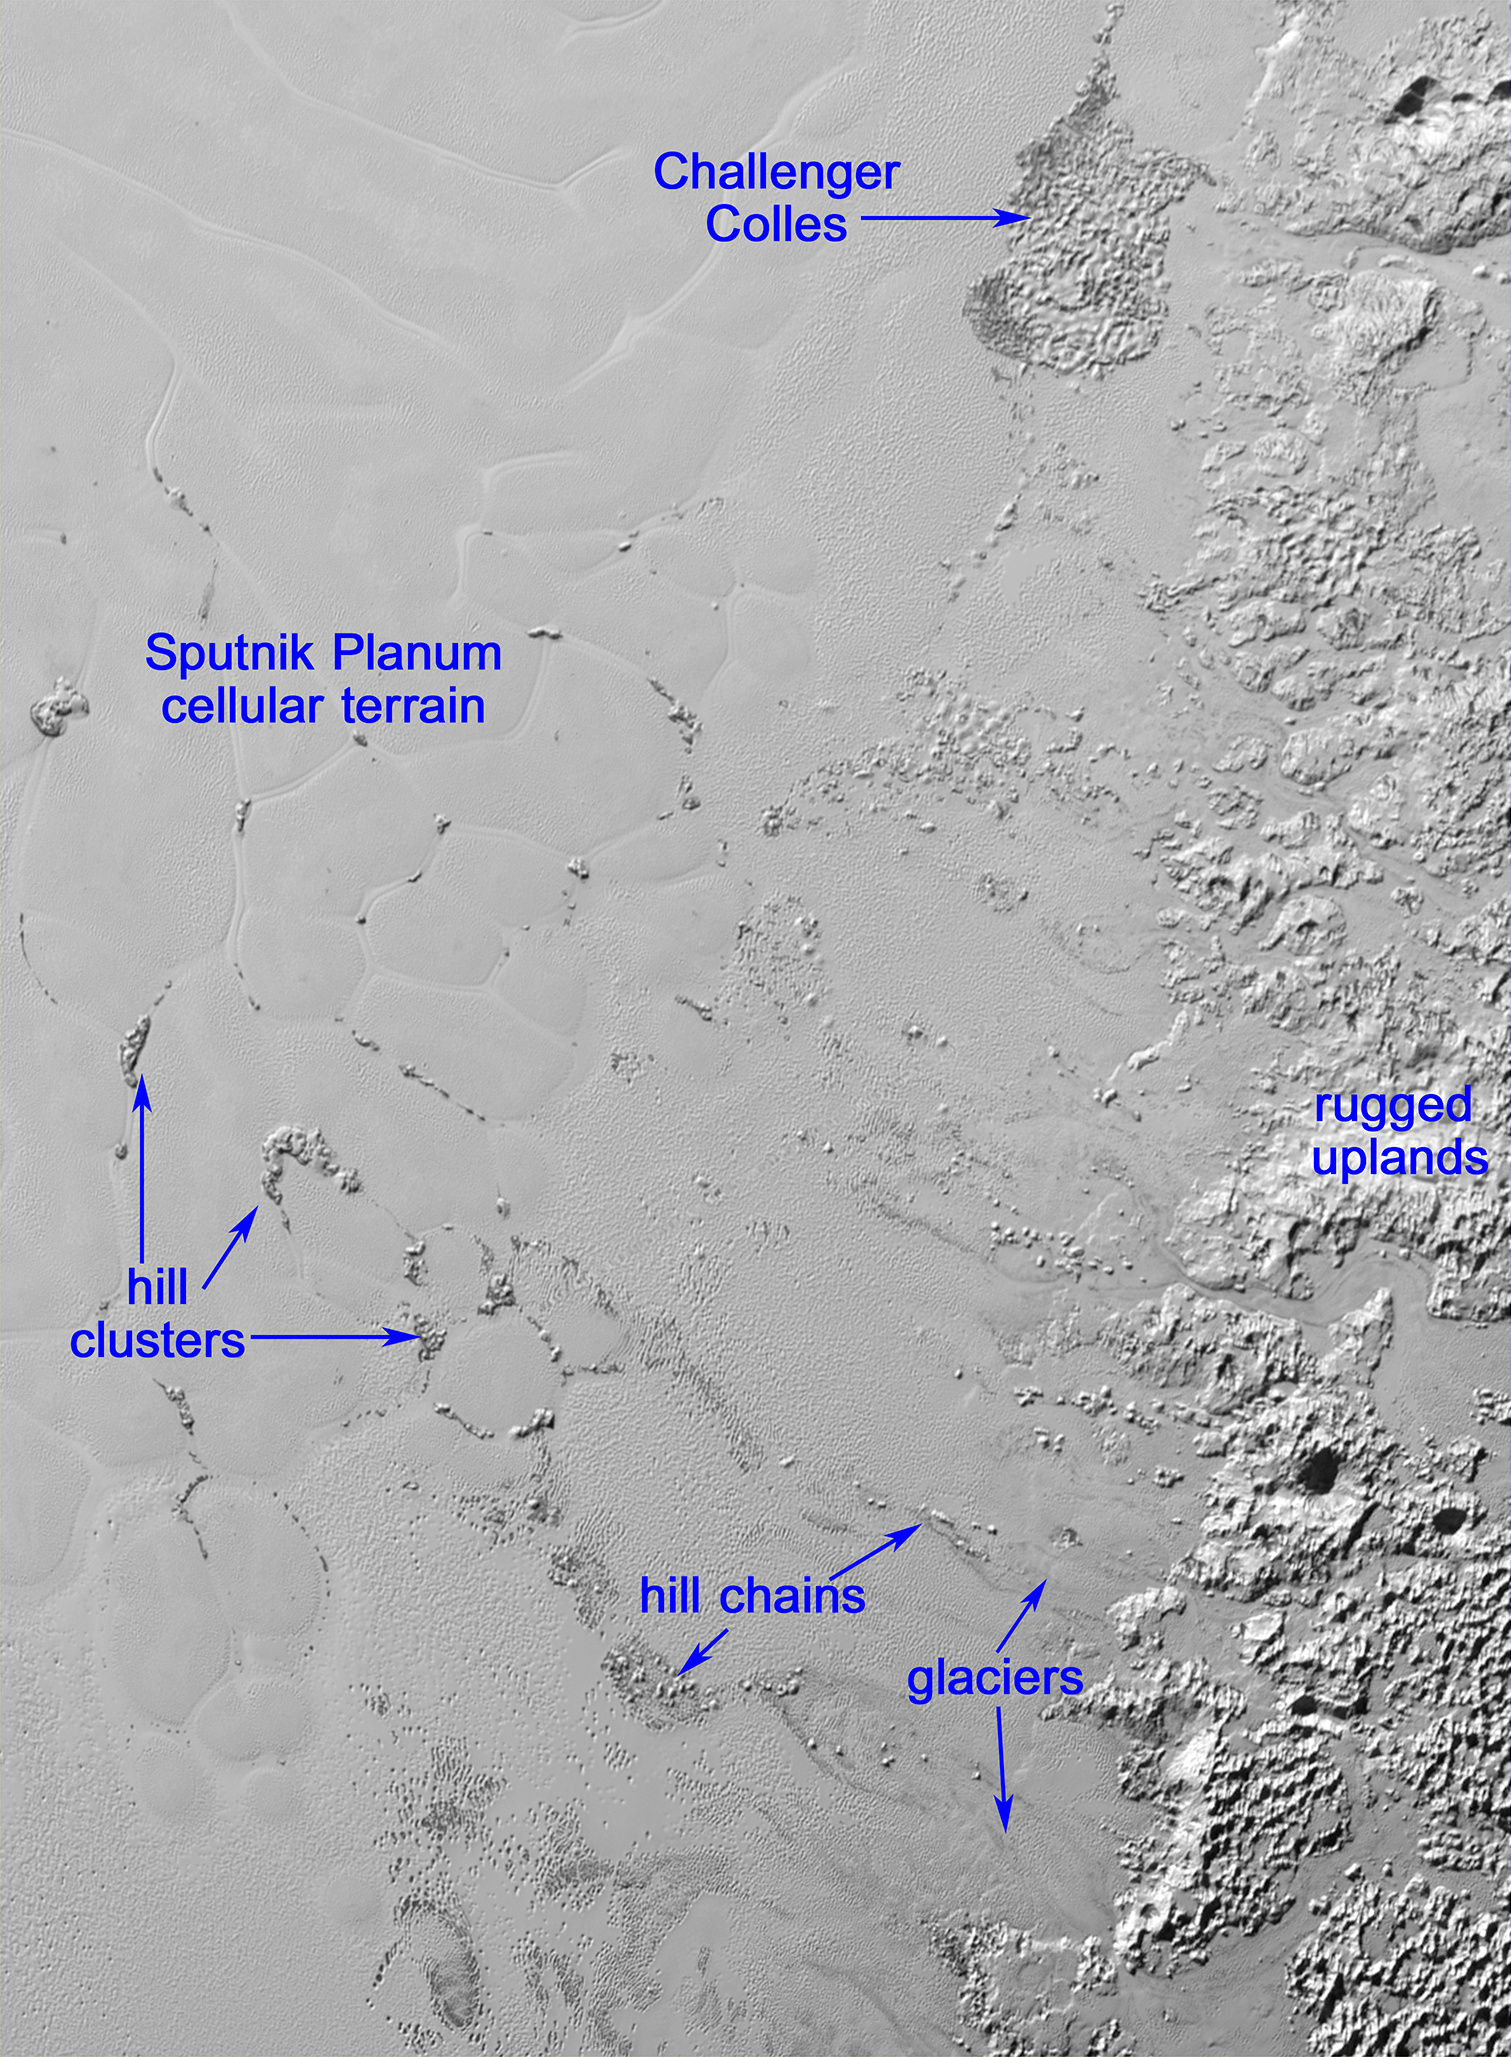 Hills of water ice on Pluto 'float' in a sea of frozen nitrogen and move over time like icebergs in Earth's Arctic Ocean — another example of Pluto's fascinating geological activity. Click the image for a full-size version. Image credits: NASA/JHUAPL/SwRI.